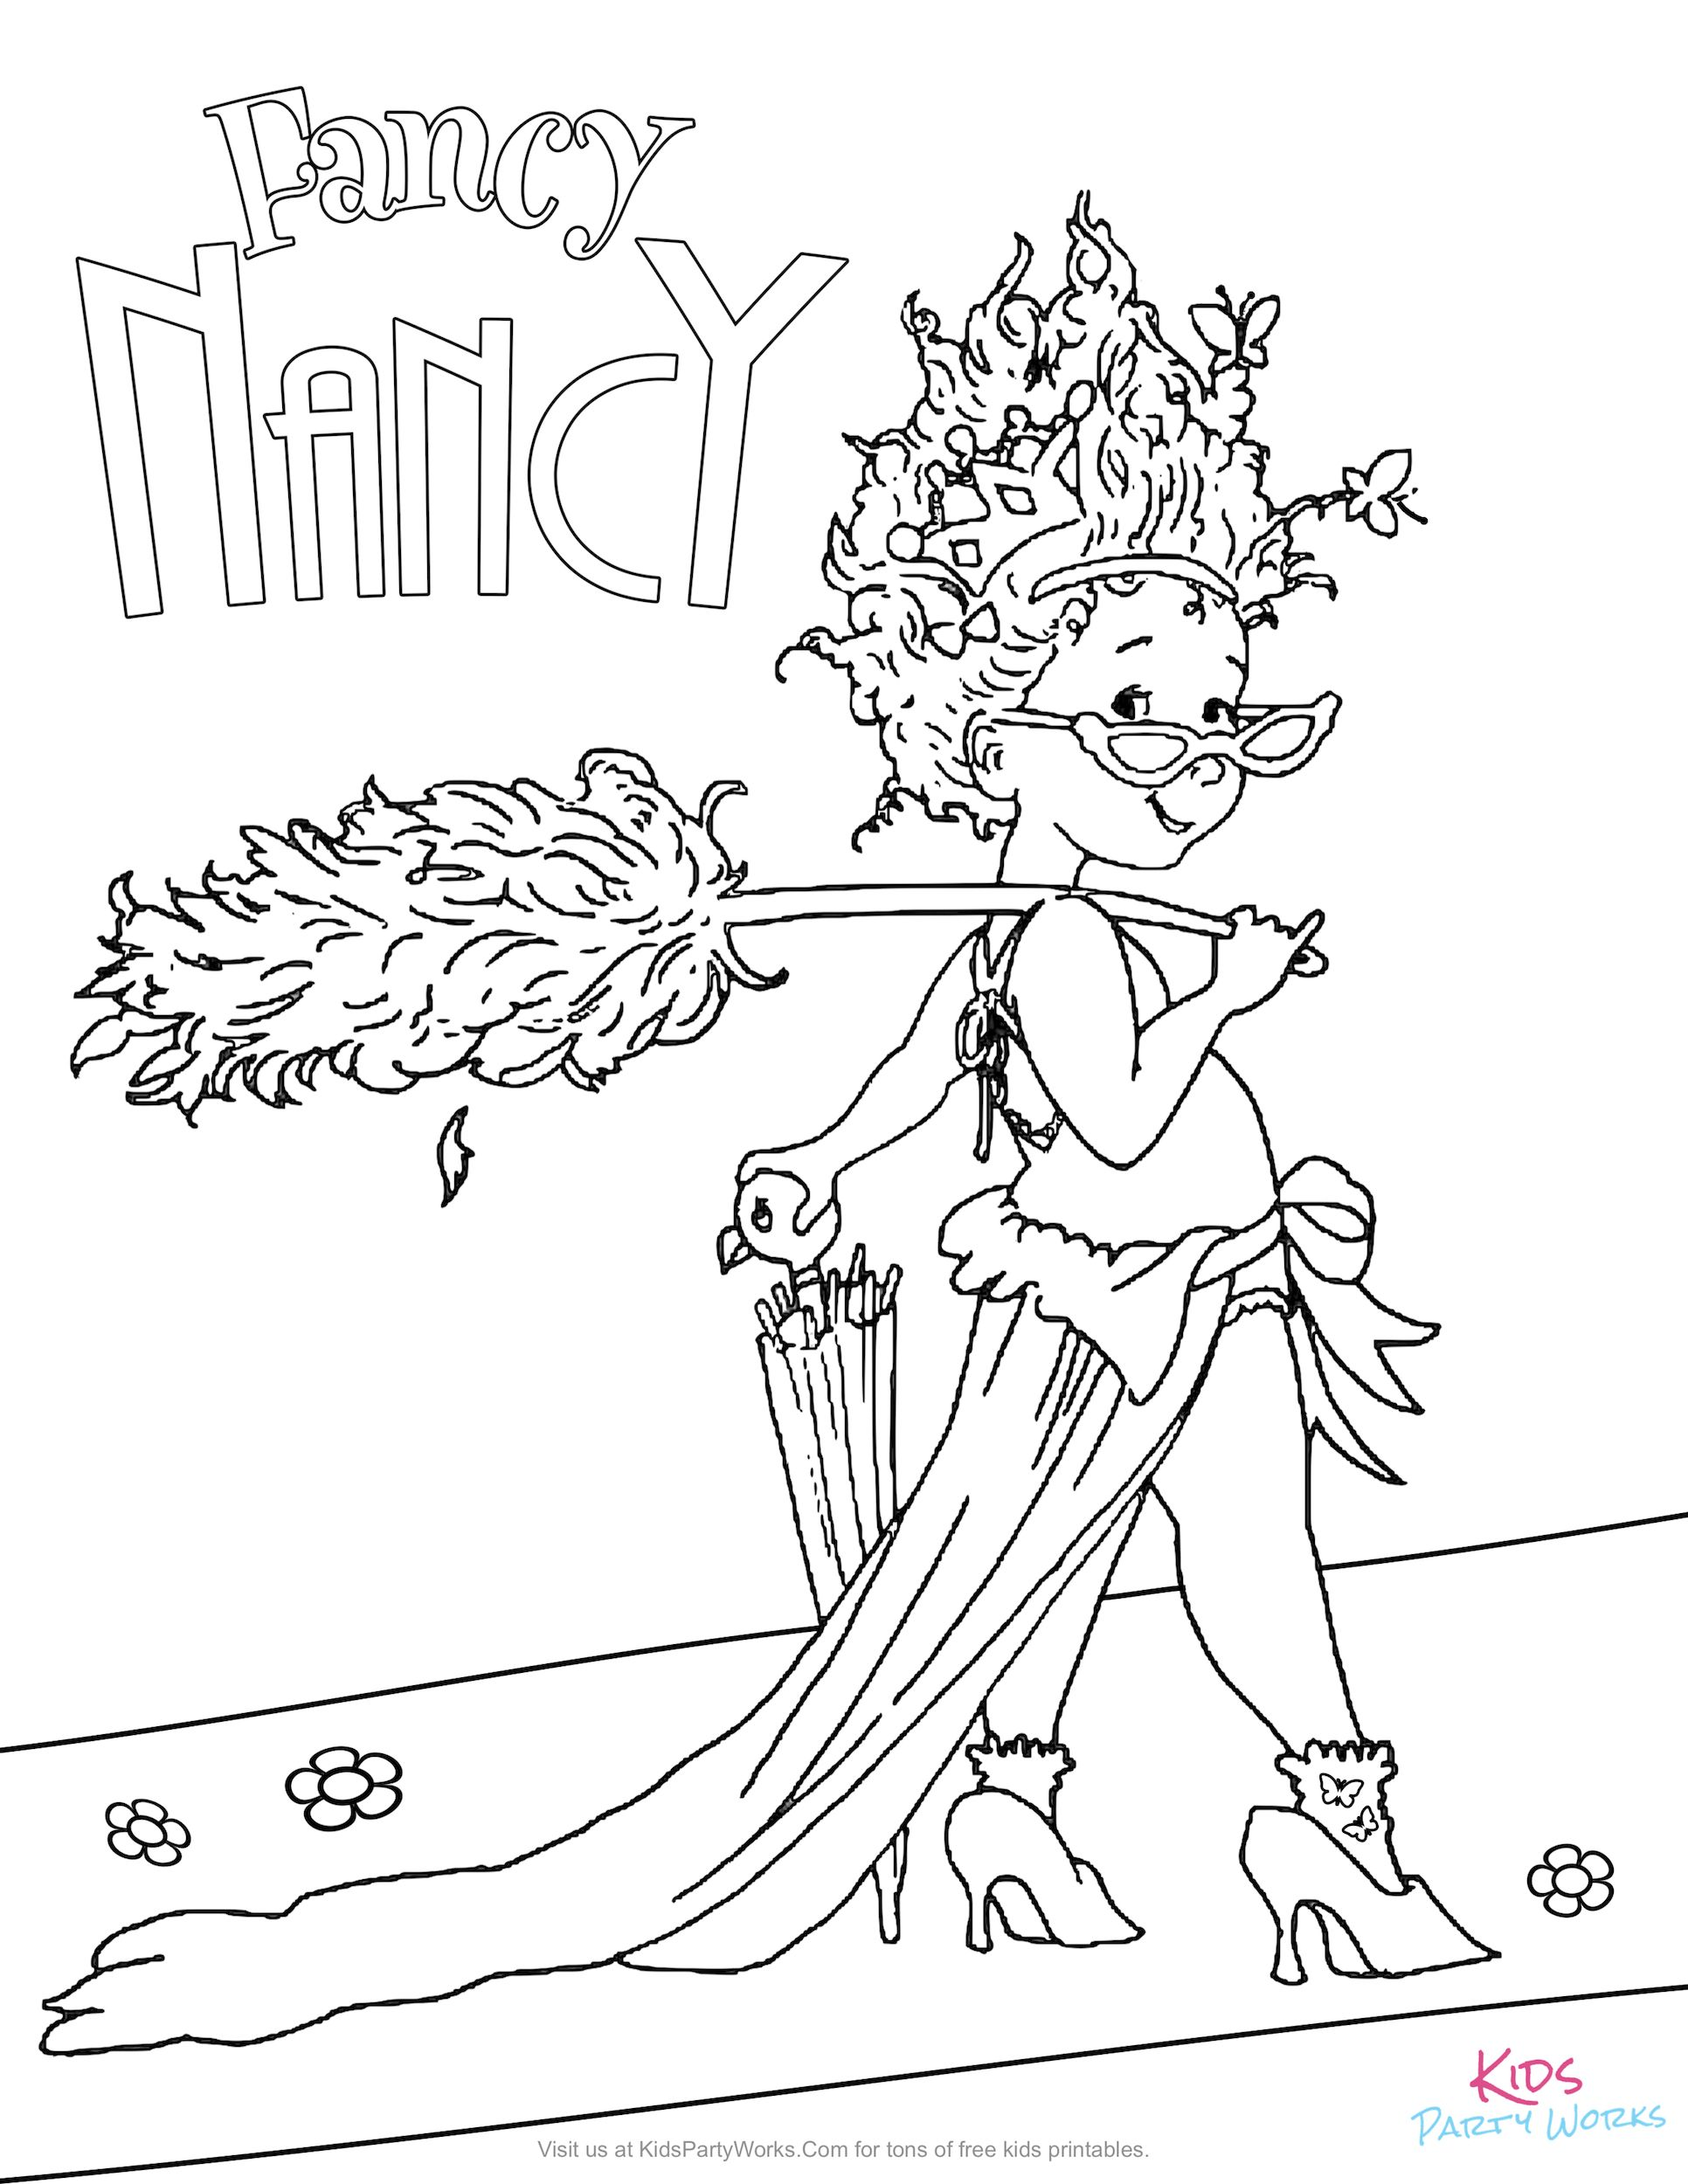 Have fun coloring this free fancy nancy coloring page for kids from